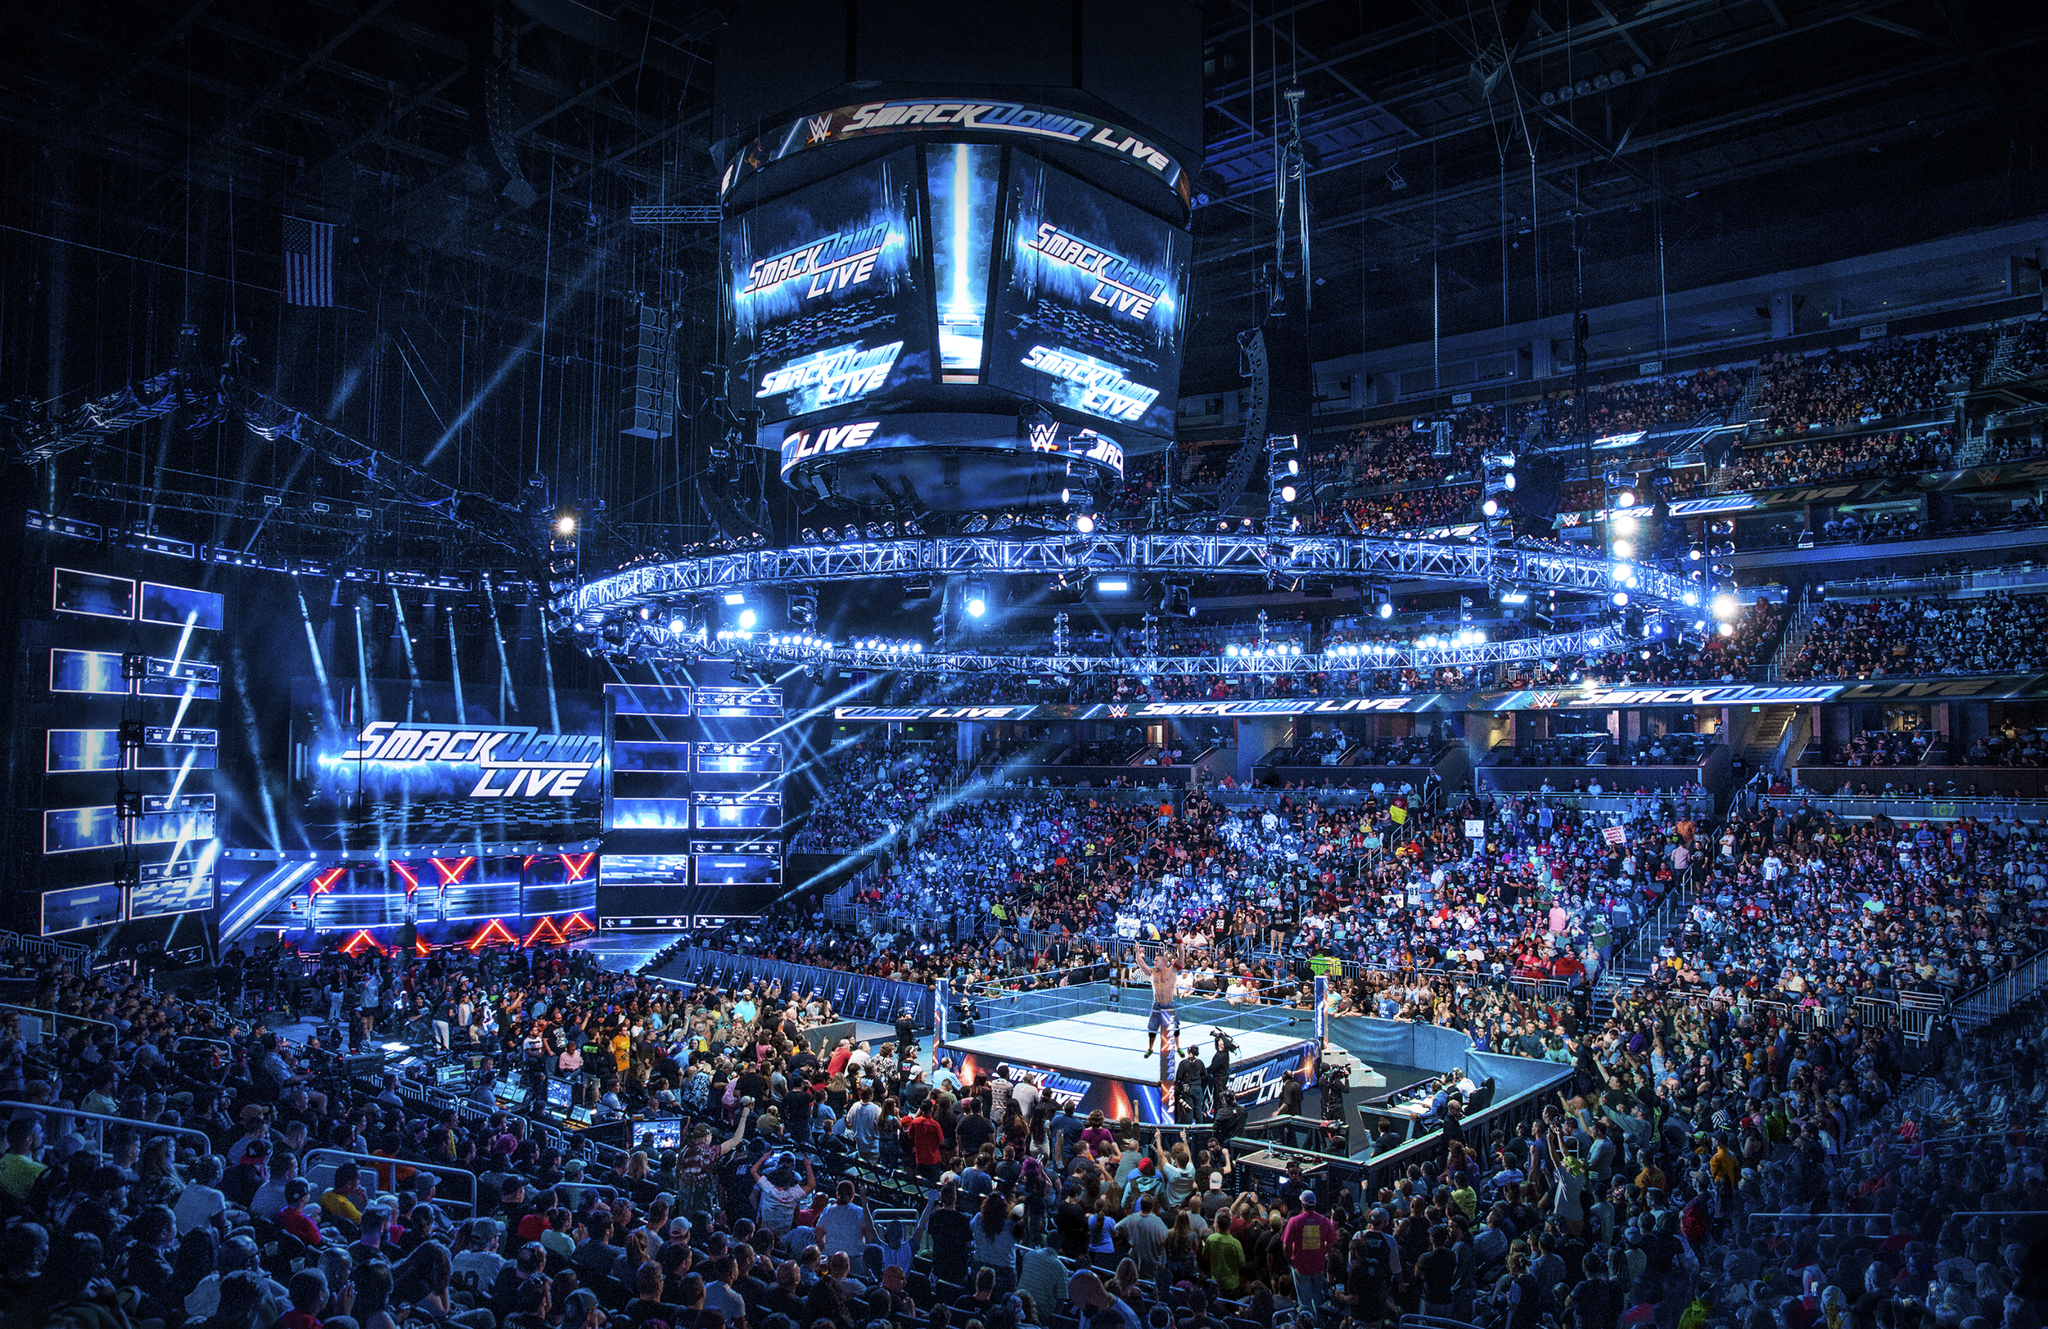 WWE® and FOX Sports Celebrate SmackDown's 20th Anniversary on October 4 | Business Wire